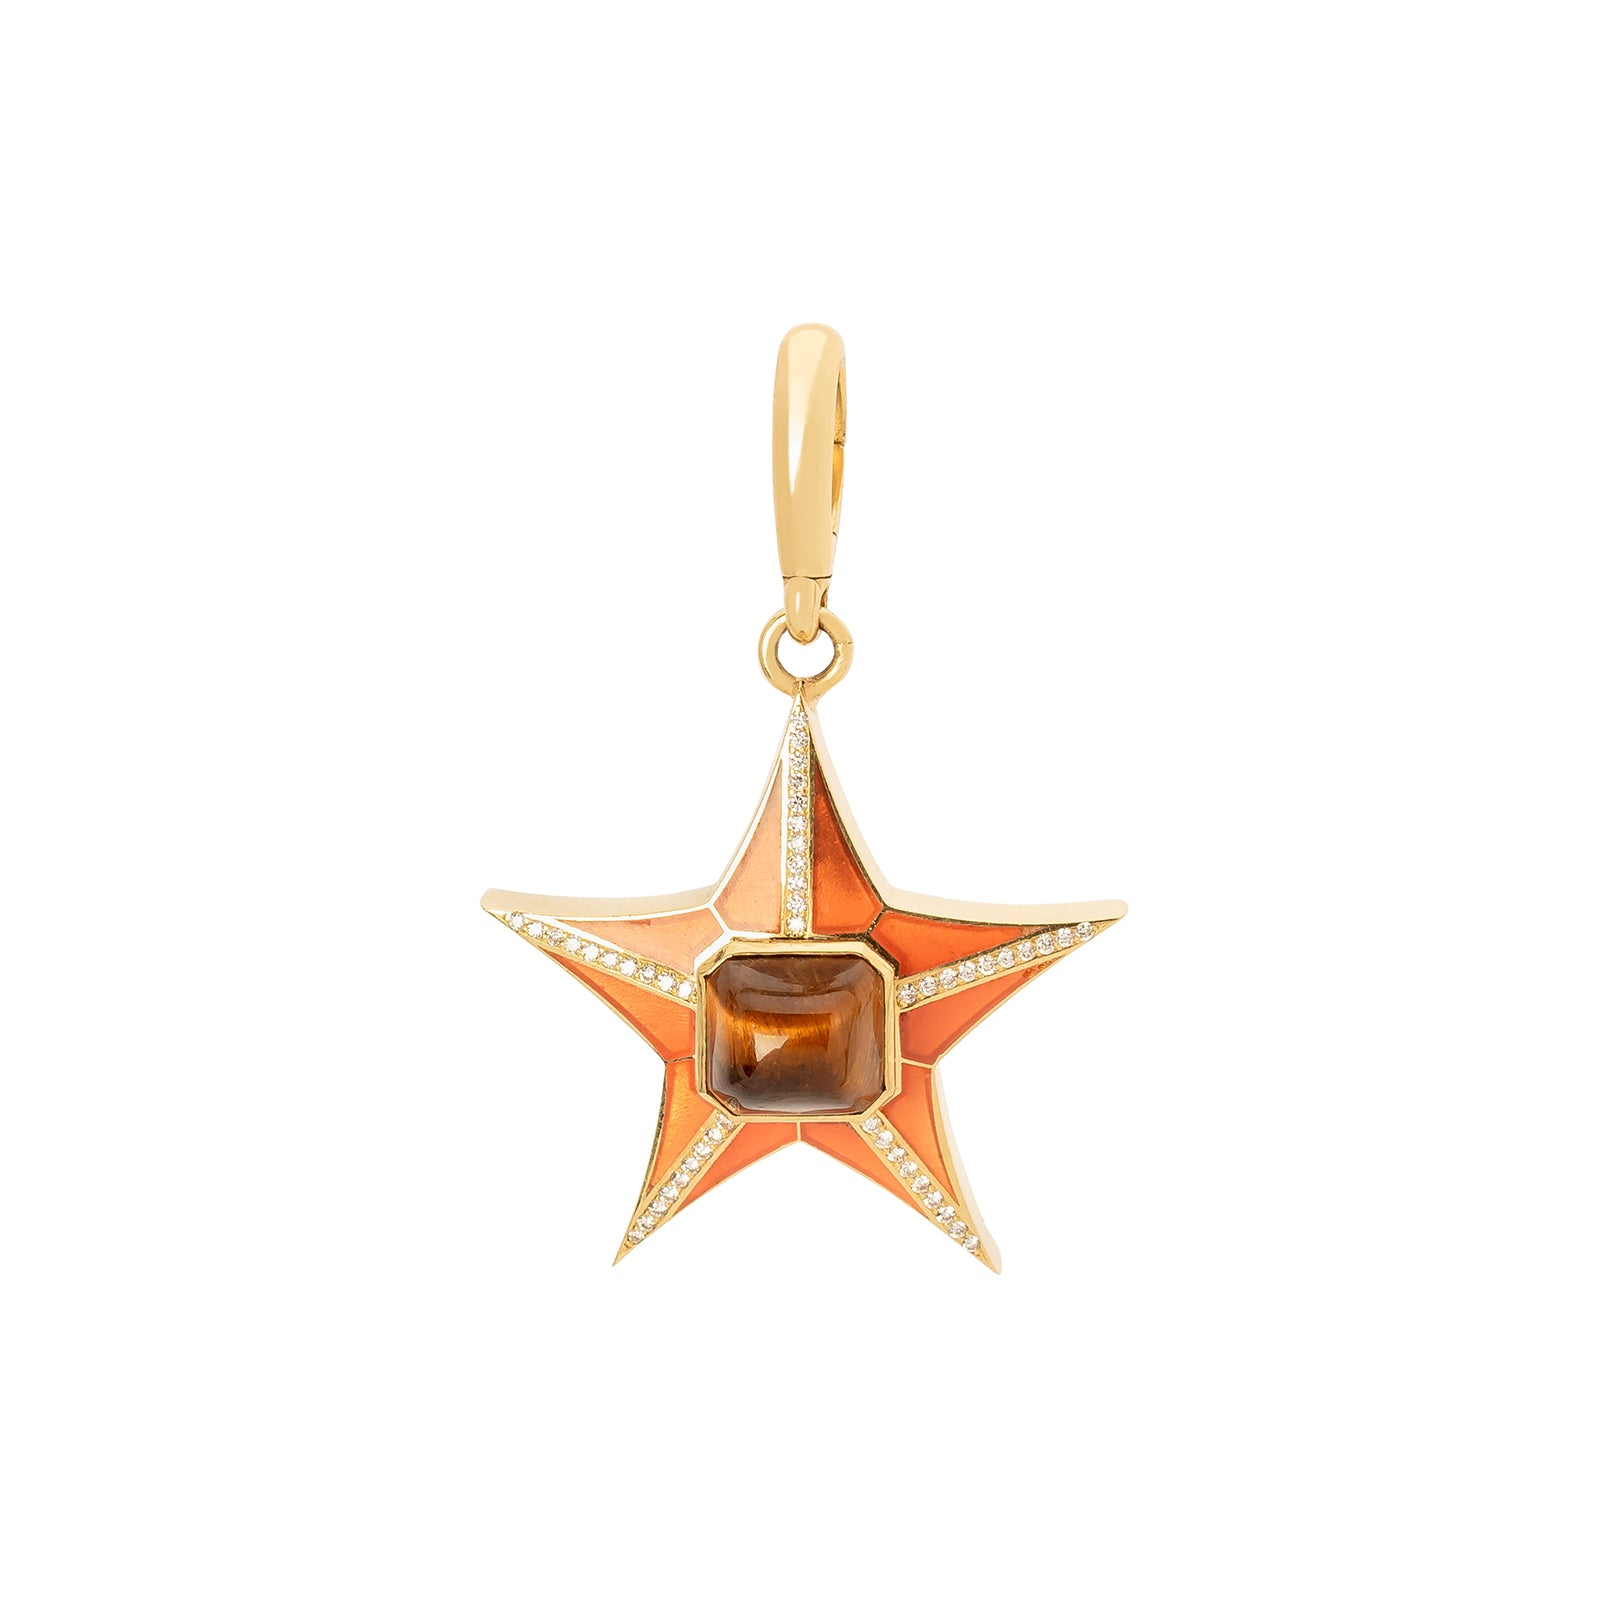 Jenna Blake Tigers Eye Star Pendant - Charms & Pendants - Broken English Jewelry